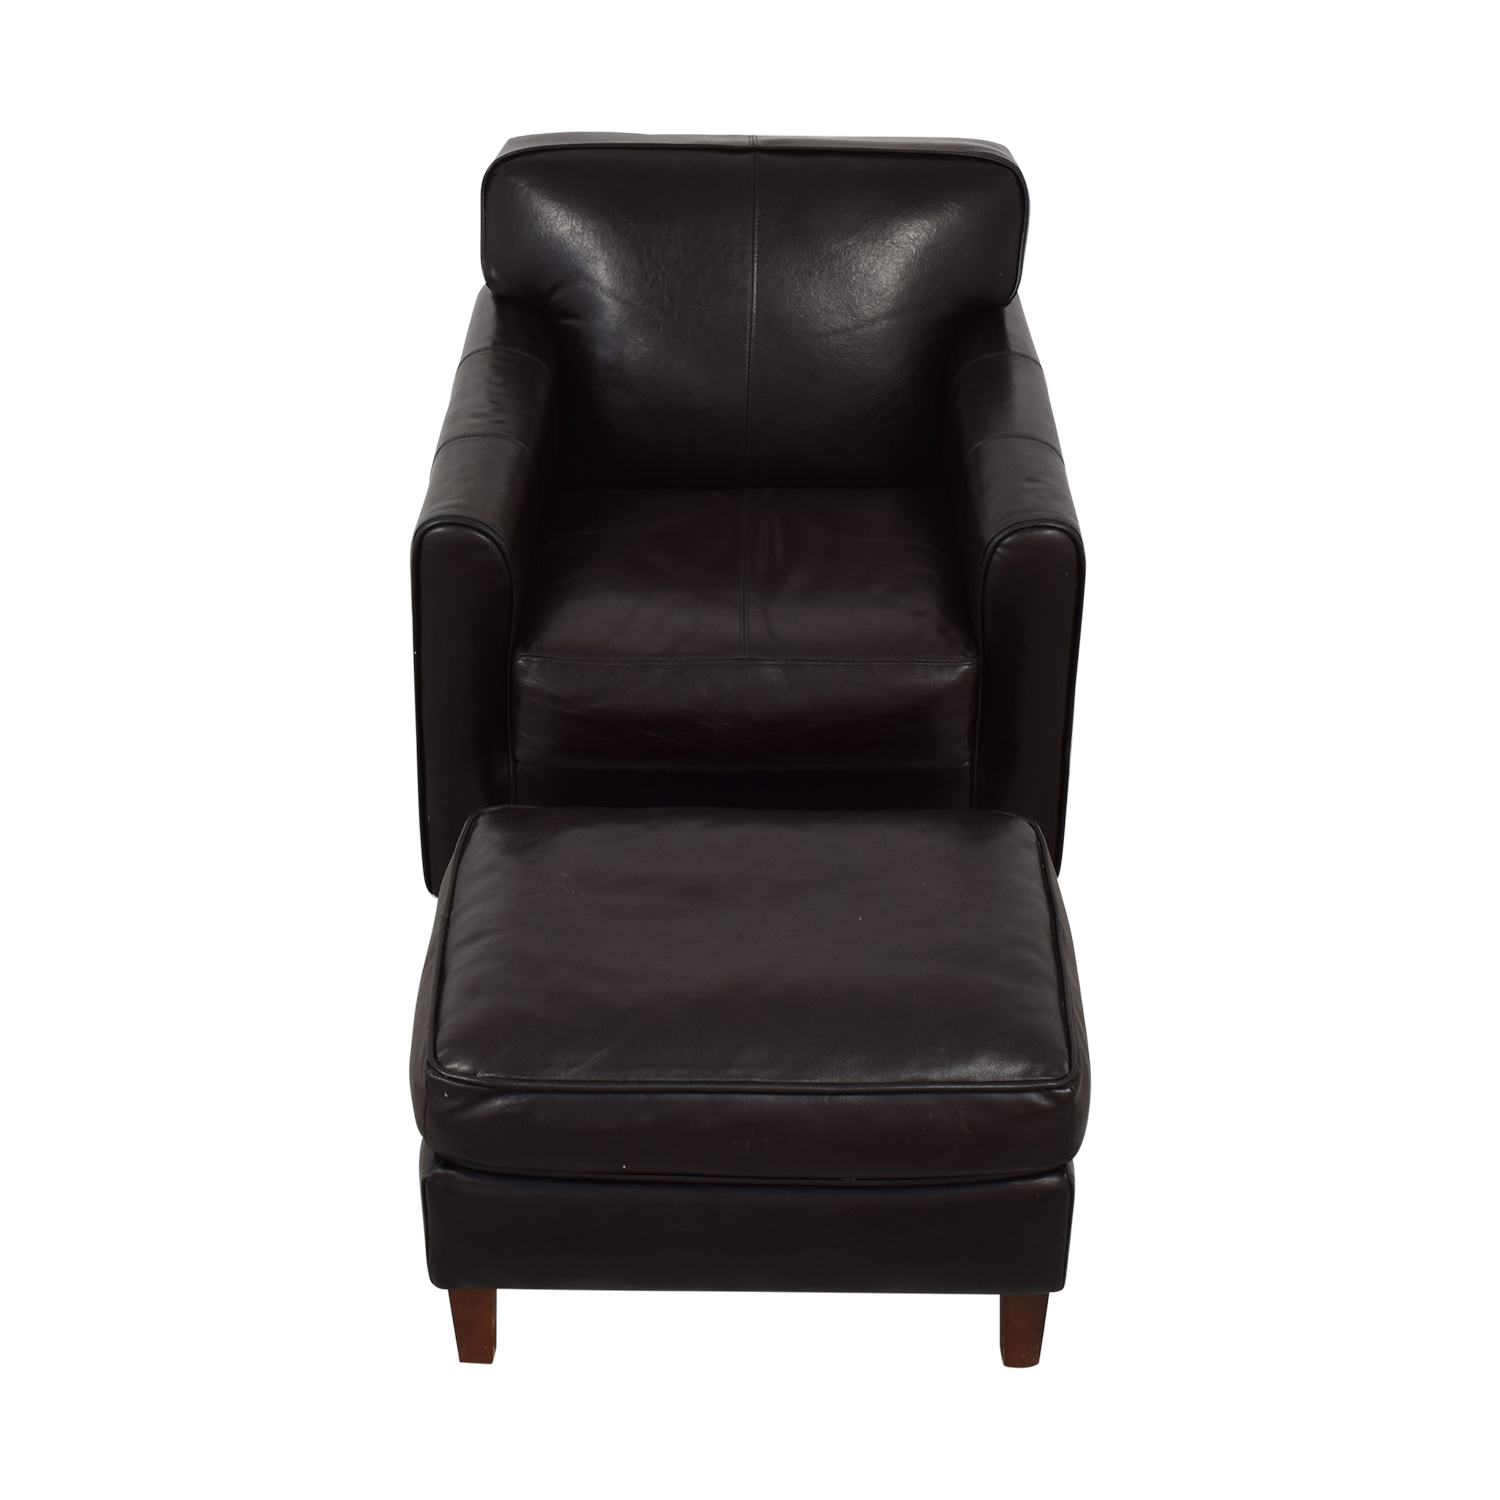 Jennifer Furniture Jennifer Leather Chair with Ottoman second hand